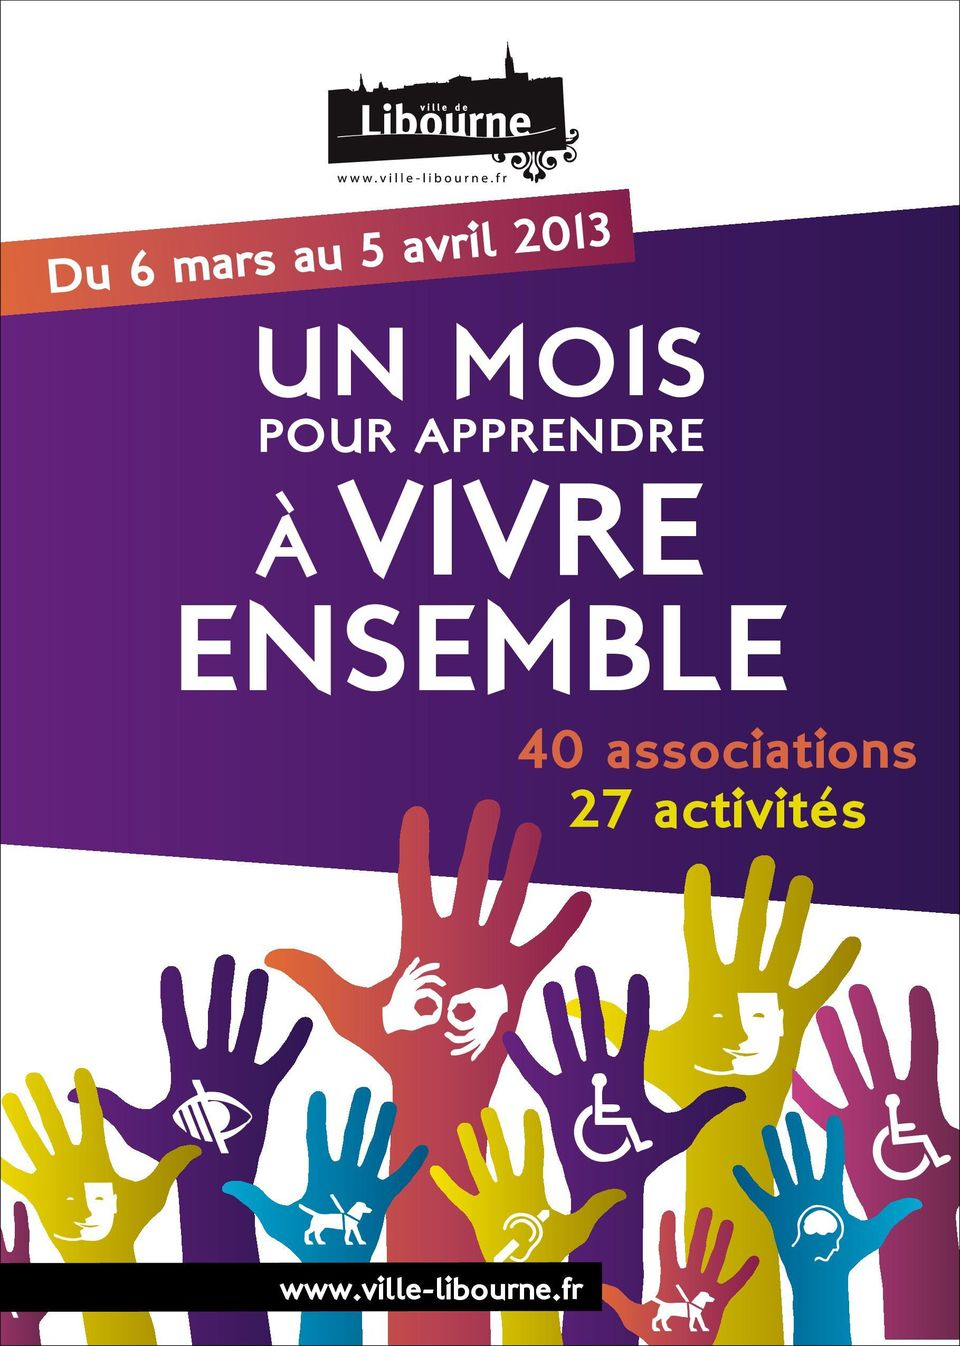 ENSEMBLE 40 associations 27